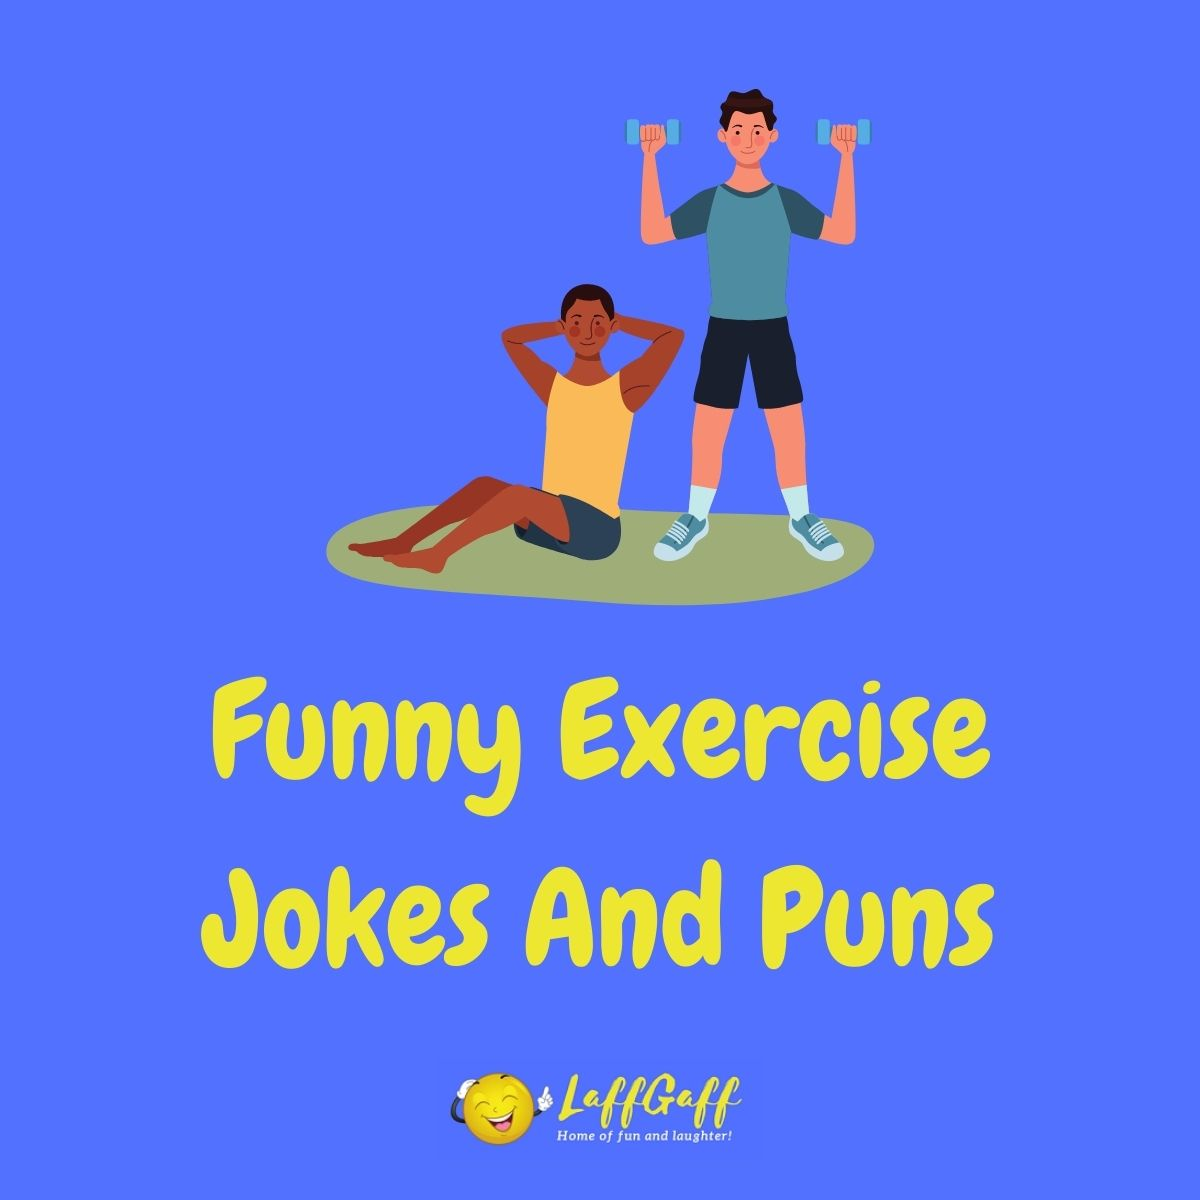 Featured image for a page of funny exercise jokes and puns.